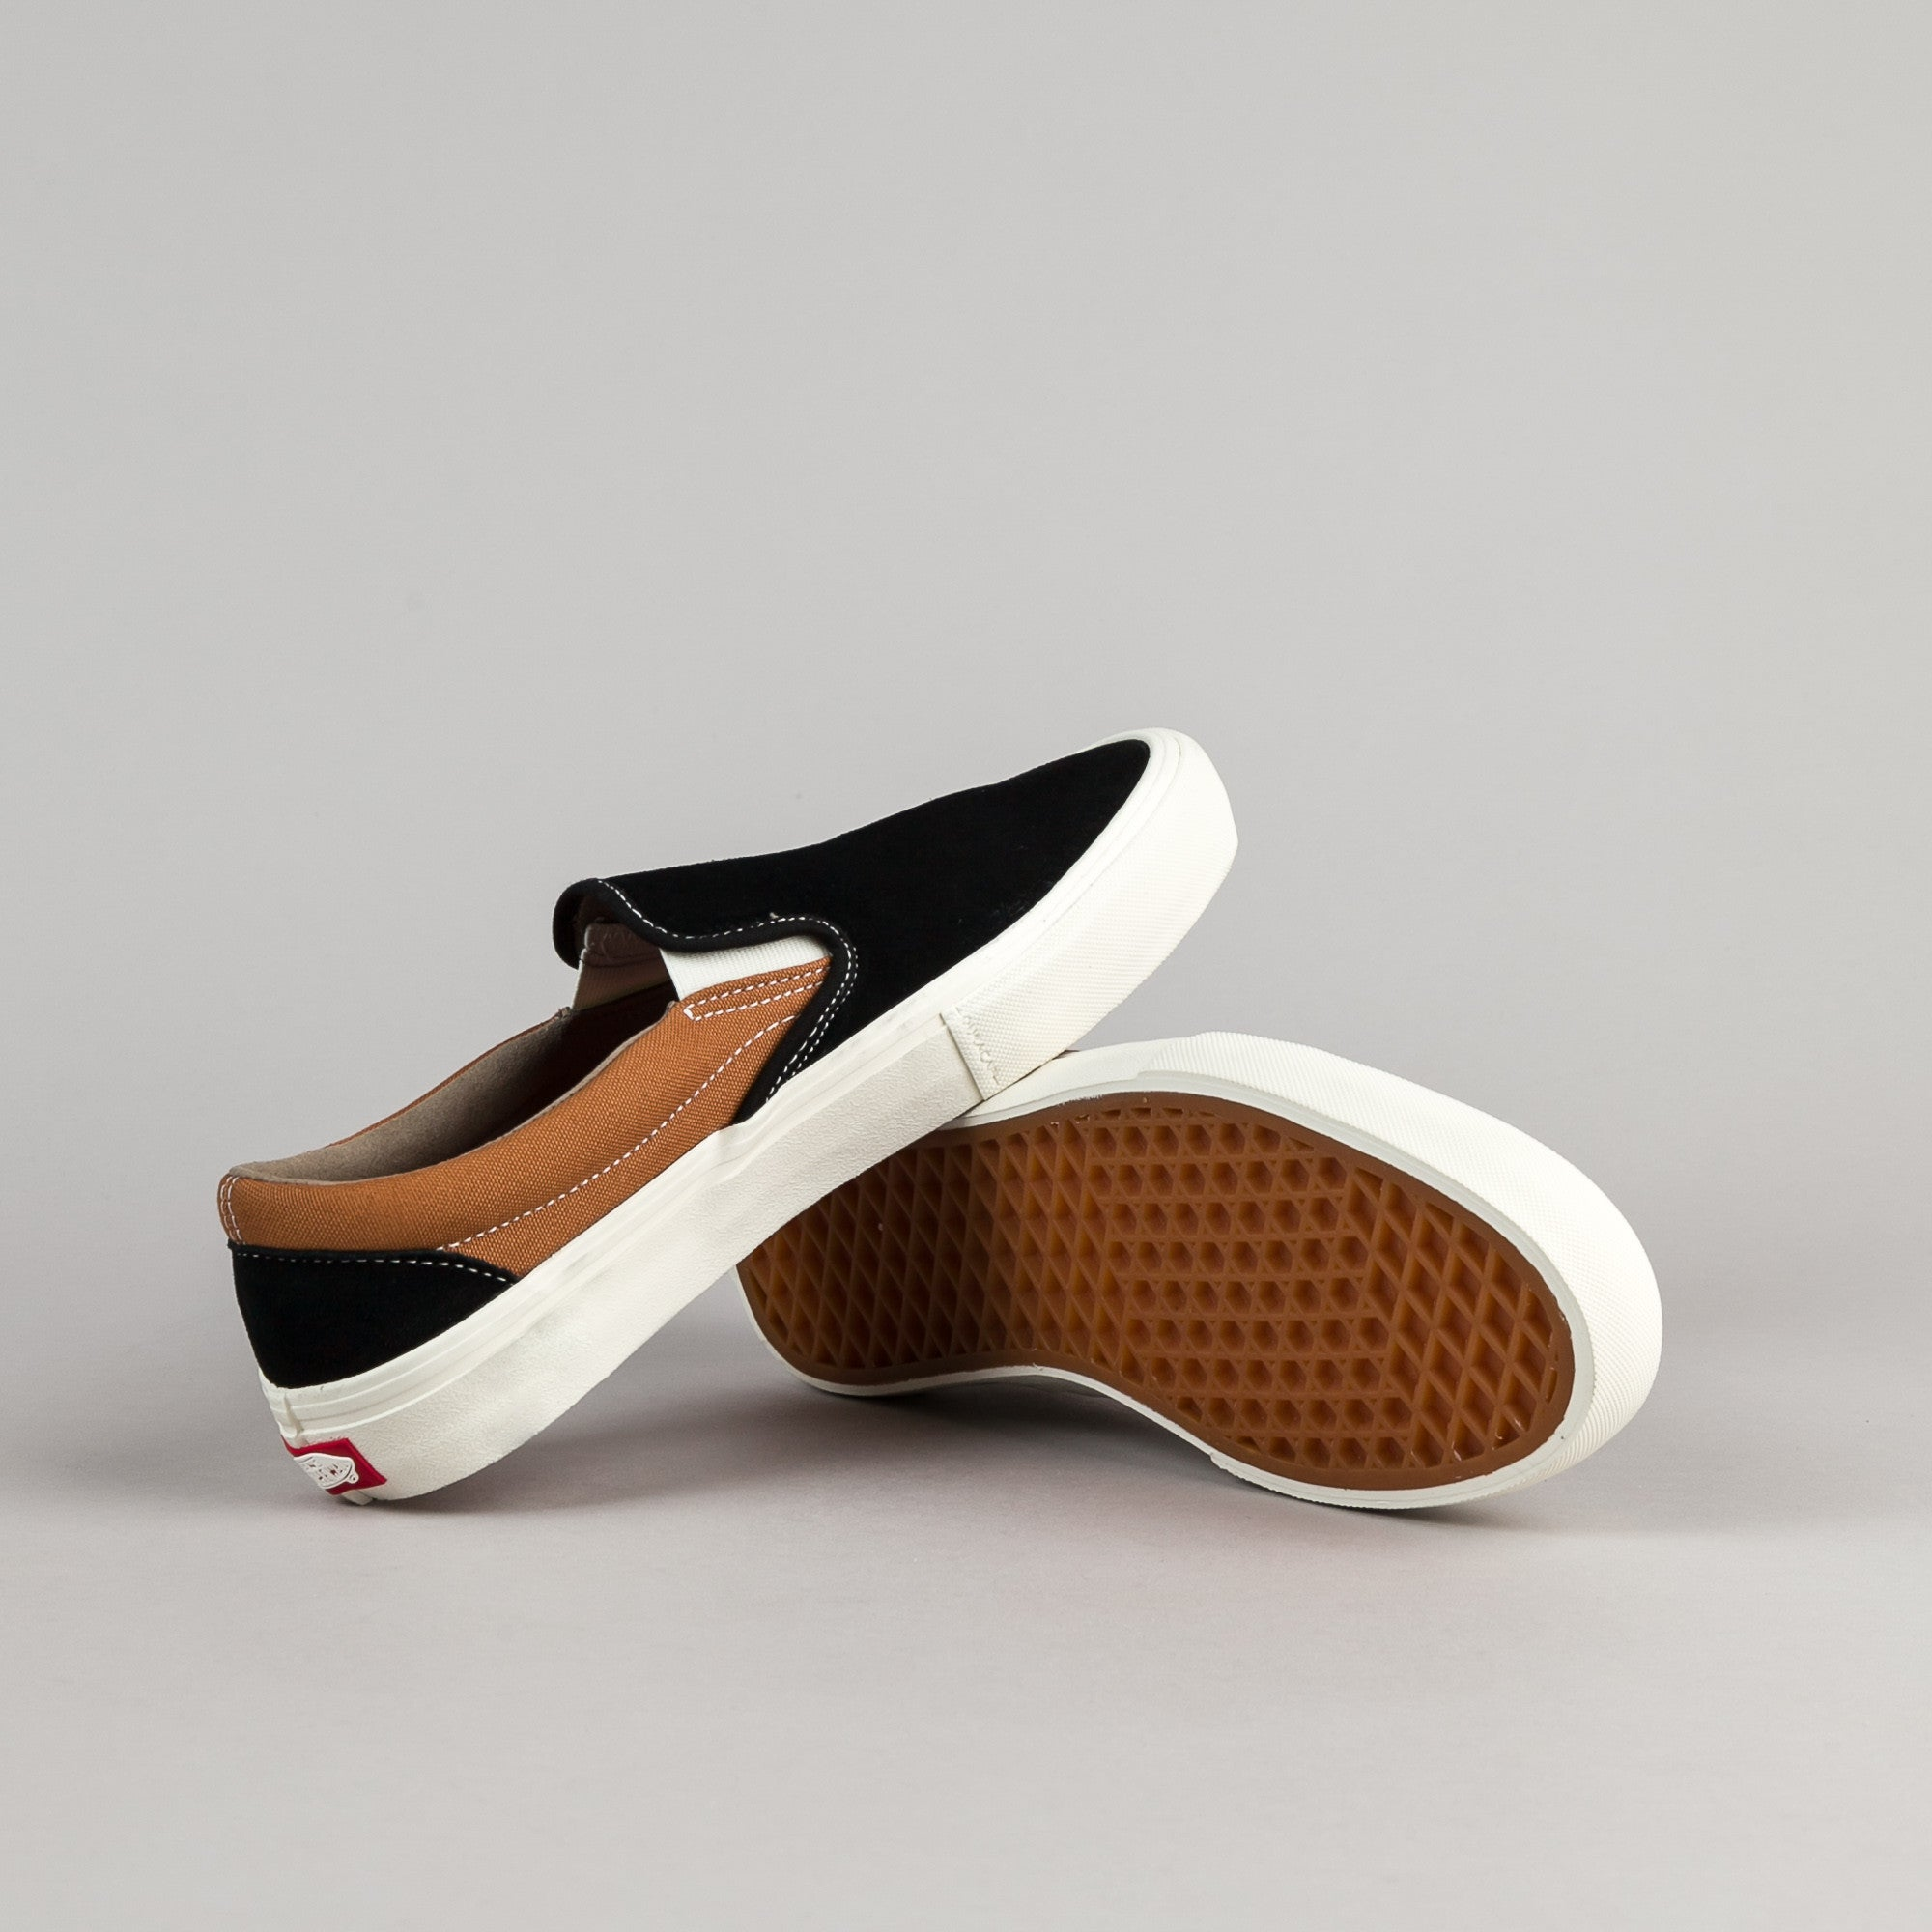 Vans Slip-On Pro Shoes - Black / Bronze